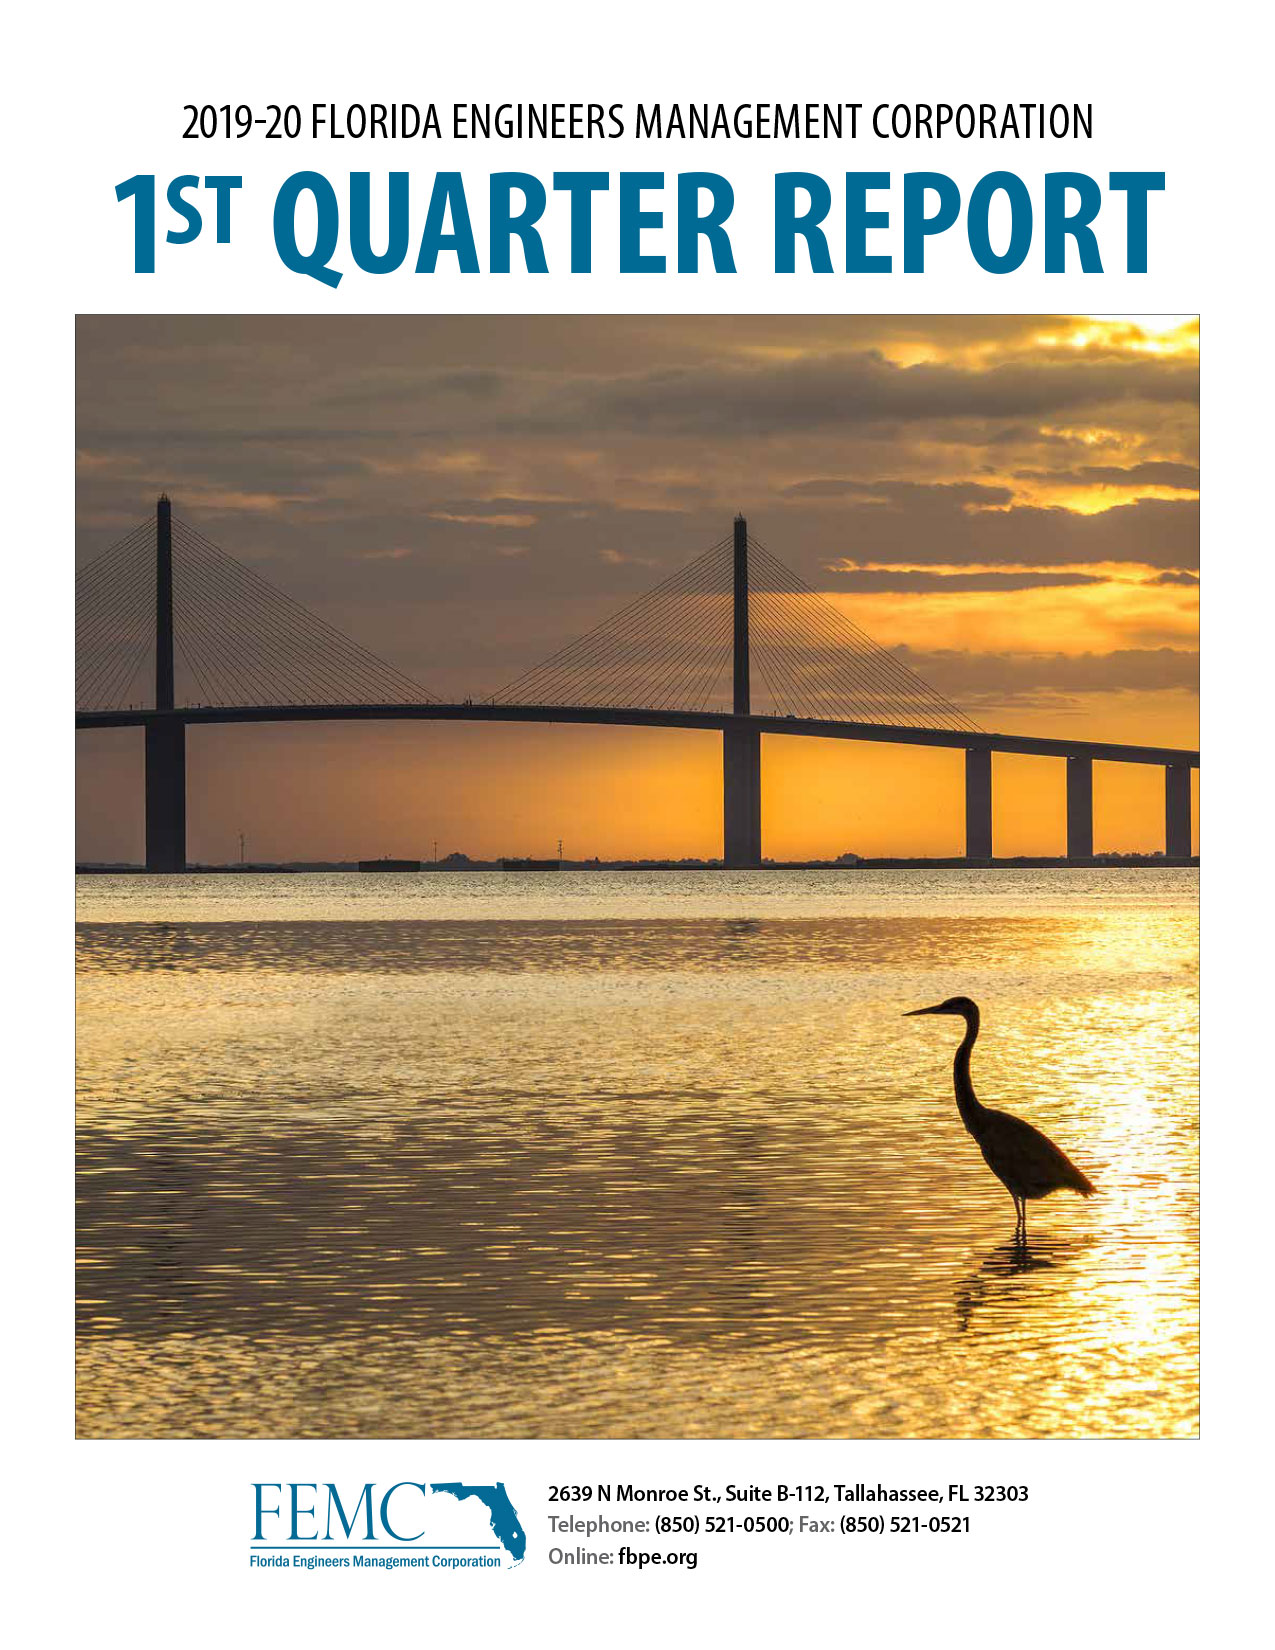 Cover of the 2019-20 Florida Engineers Management Corporation 1st Quarter Report